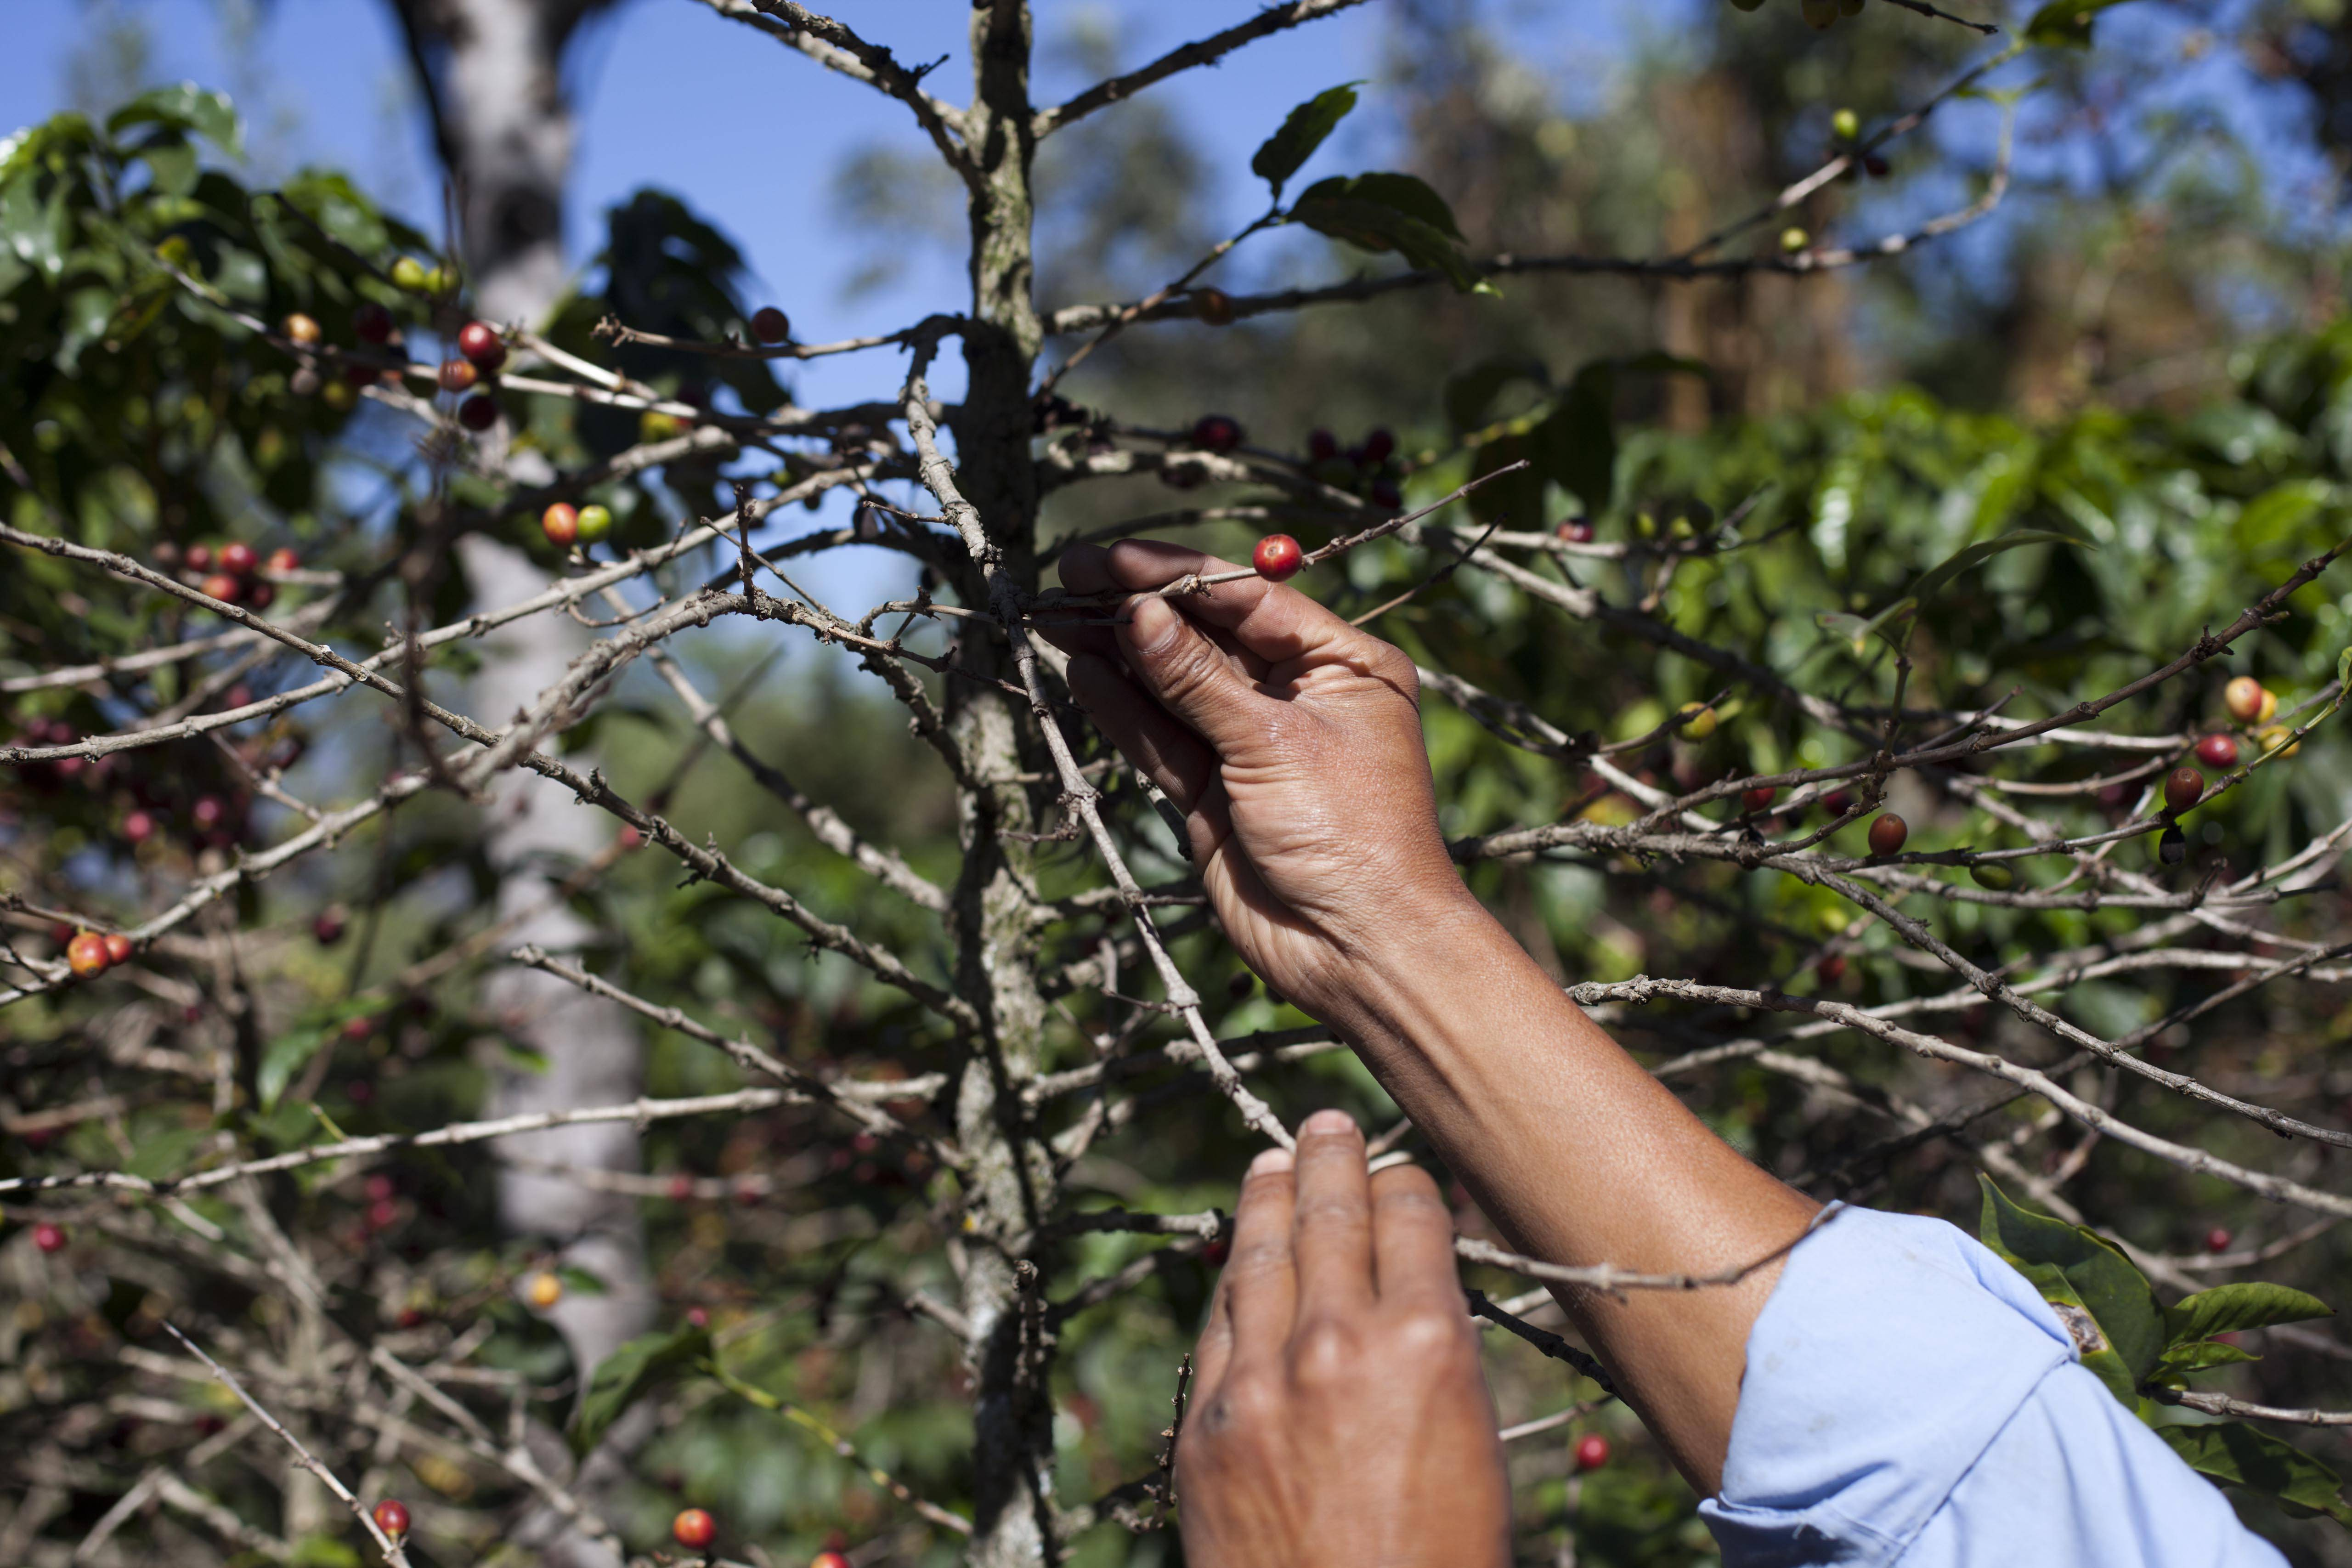 The U.S. government is stepping up efforts to help Central American farmers fight a devastating coffee disease -- and to keep the price of your morning cup down.